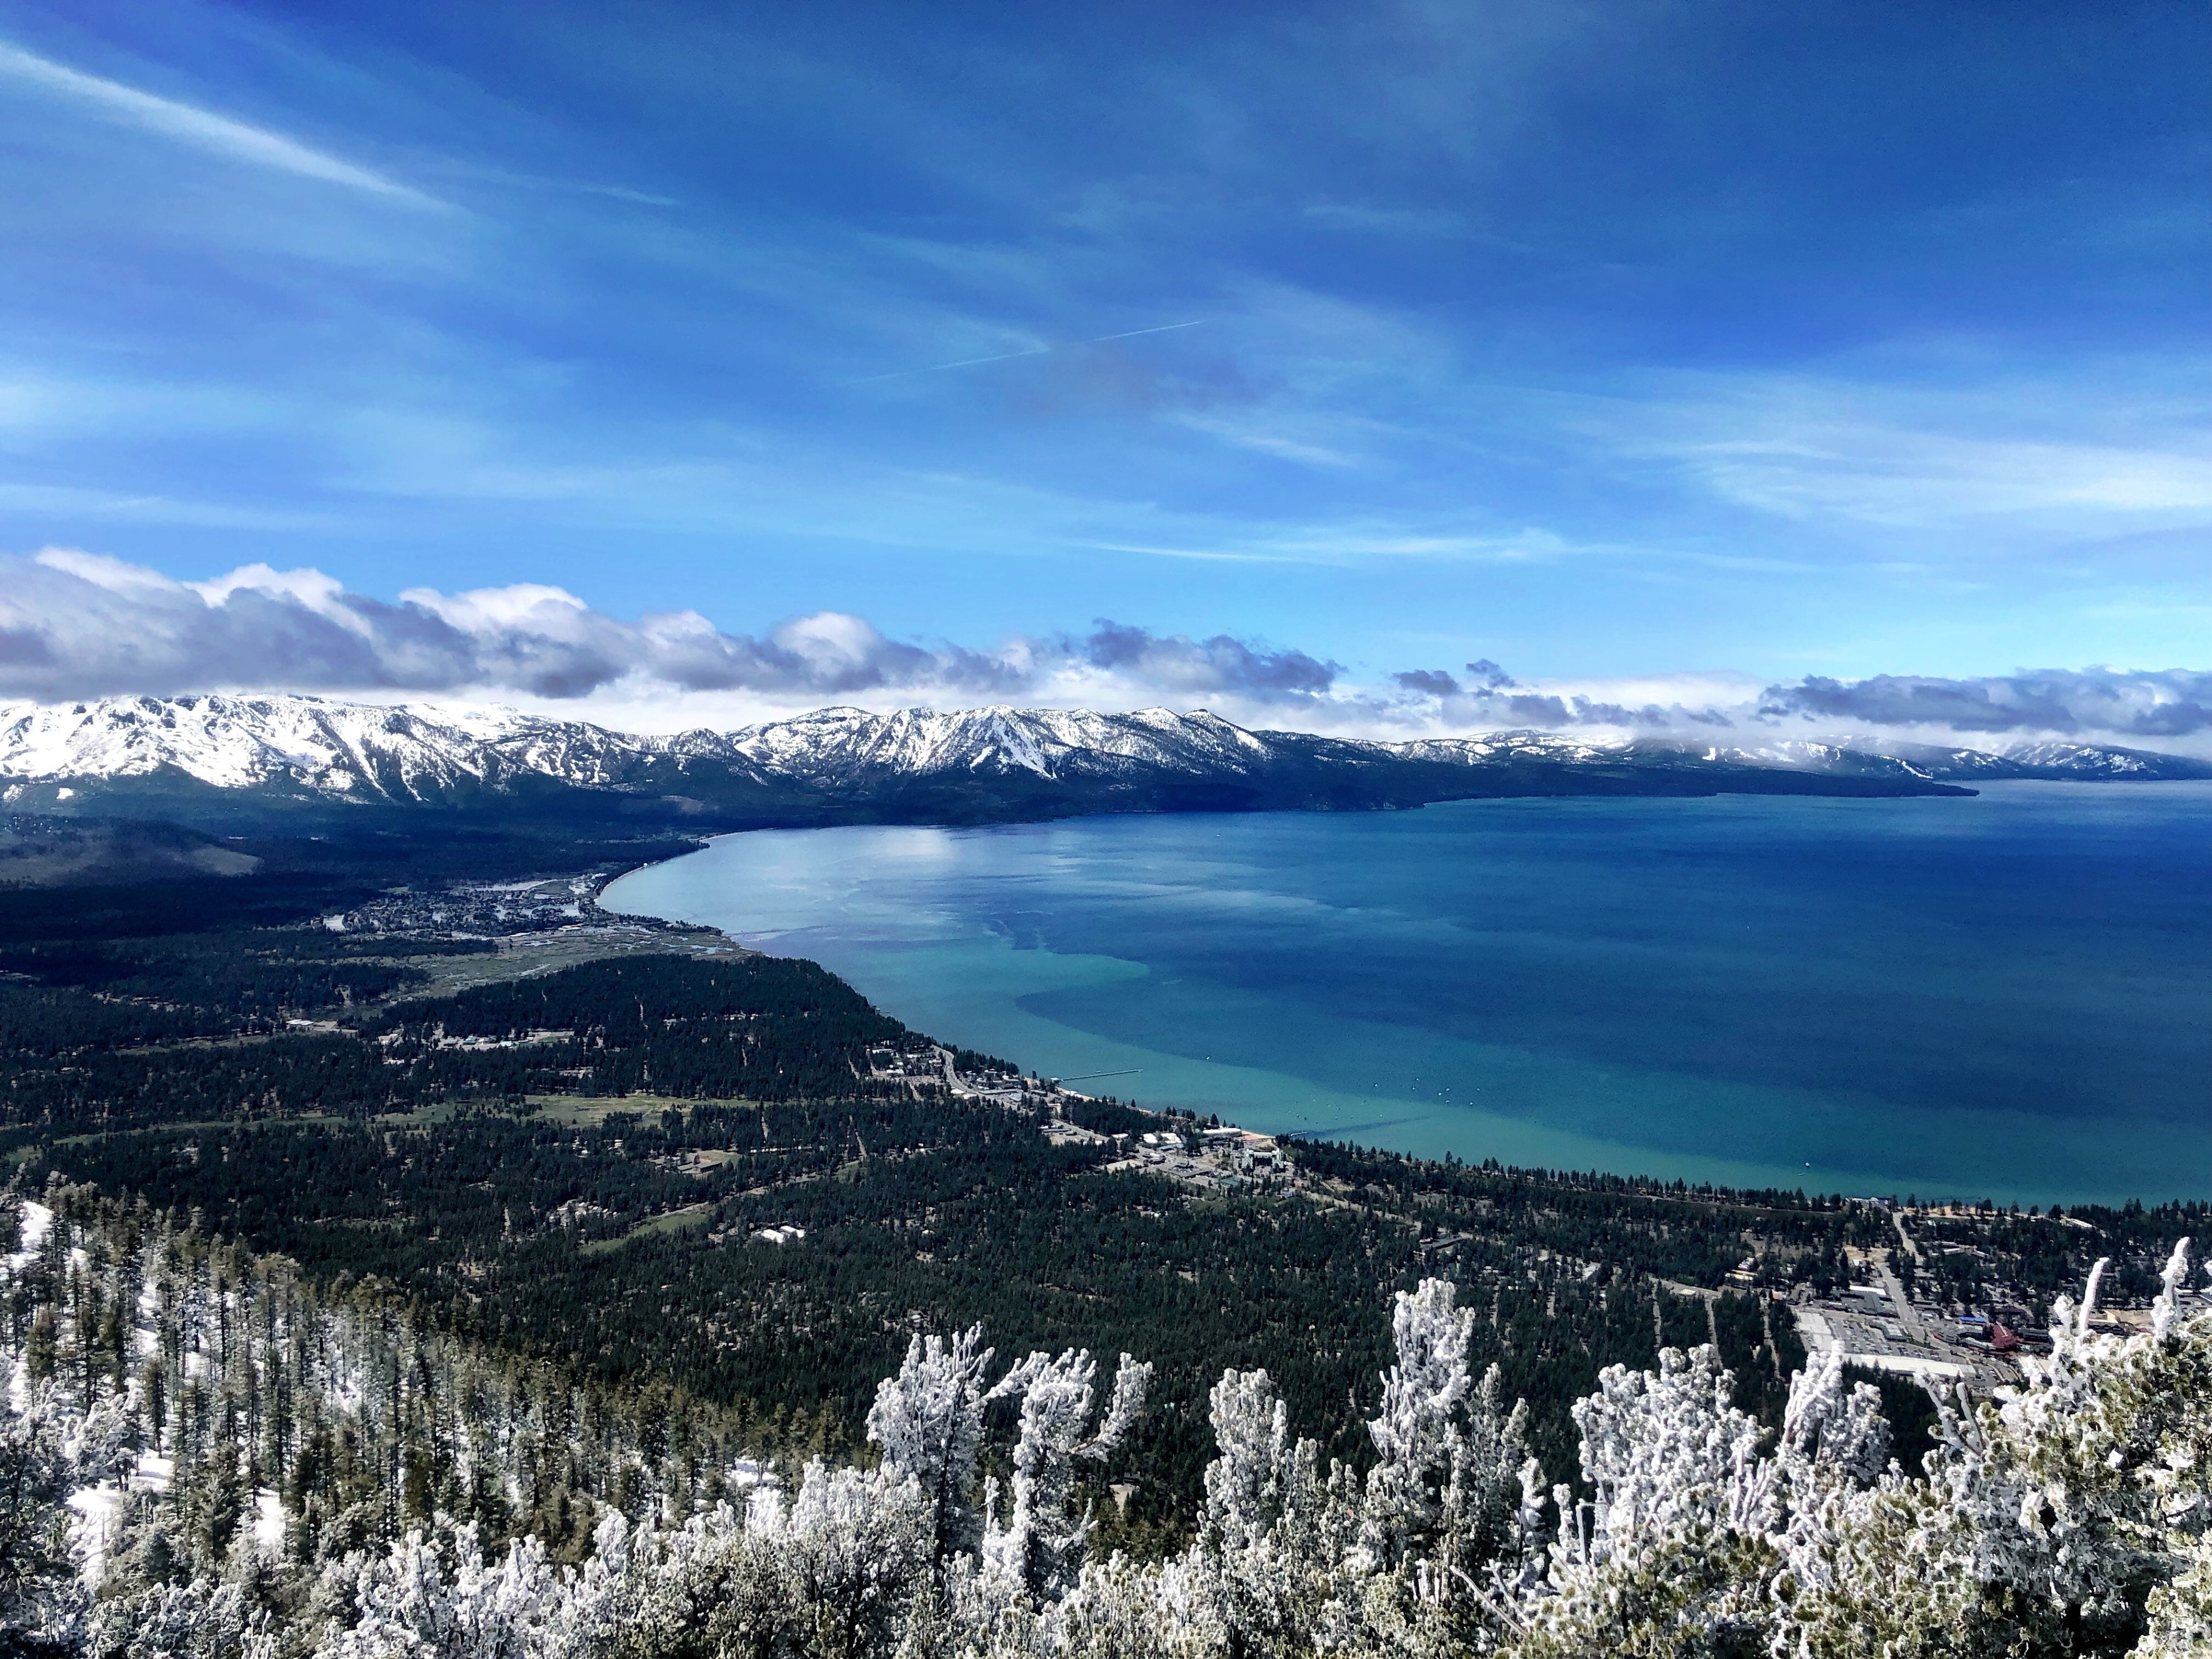 Heavenly Valley, South Lake Tahoe, California, United States of America